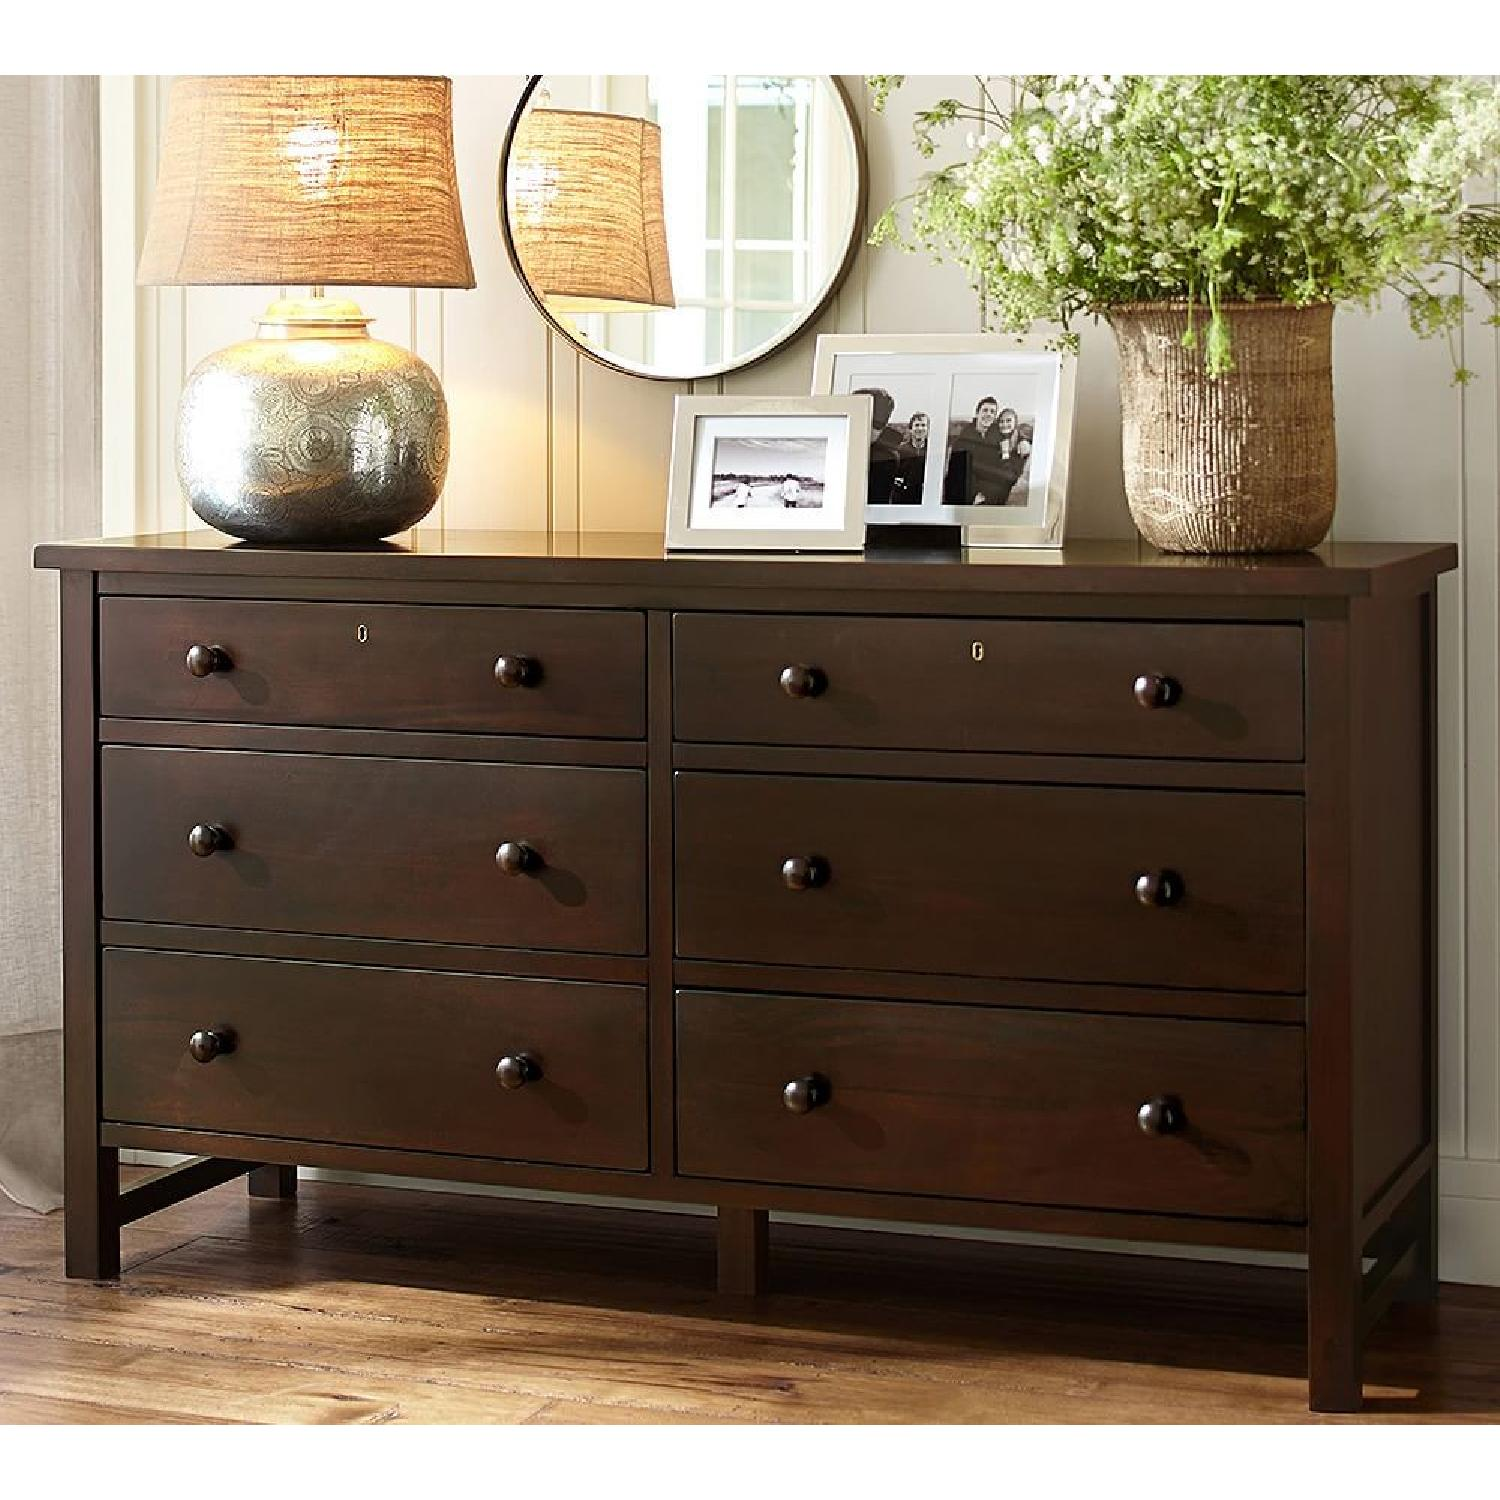 Pottery Barn Farmhouse Collection Extra Wide Dresser